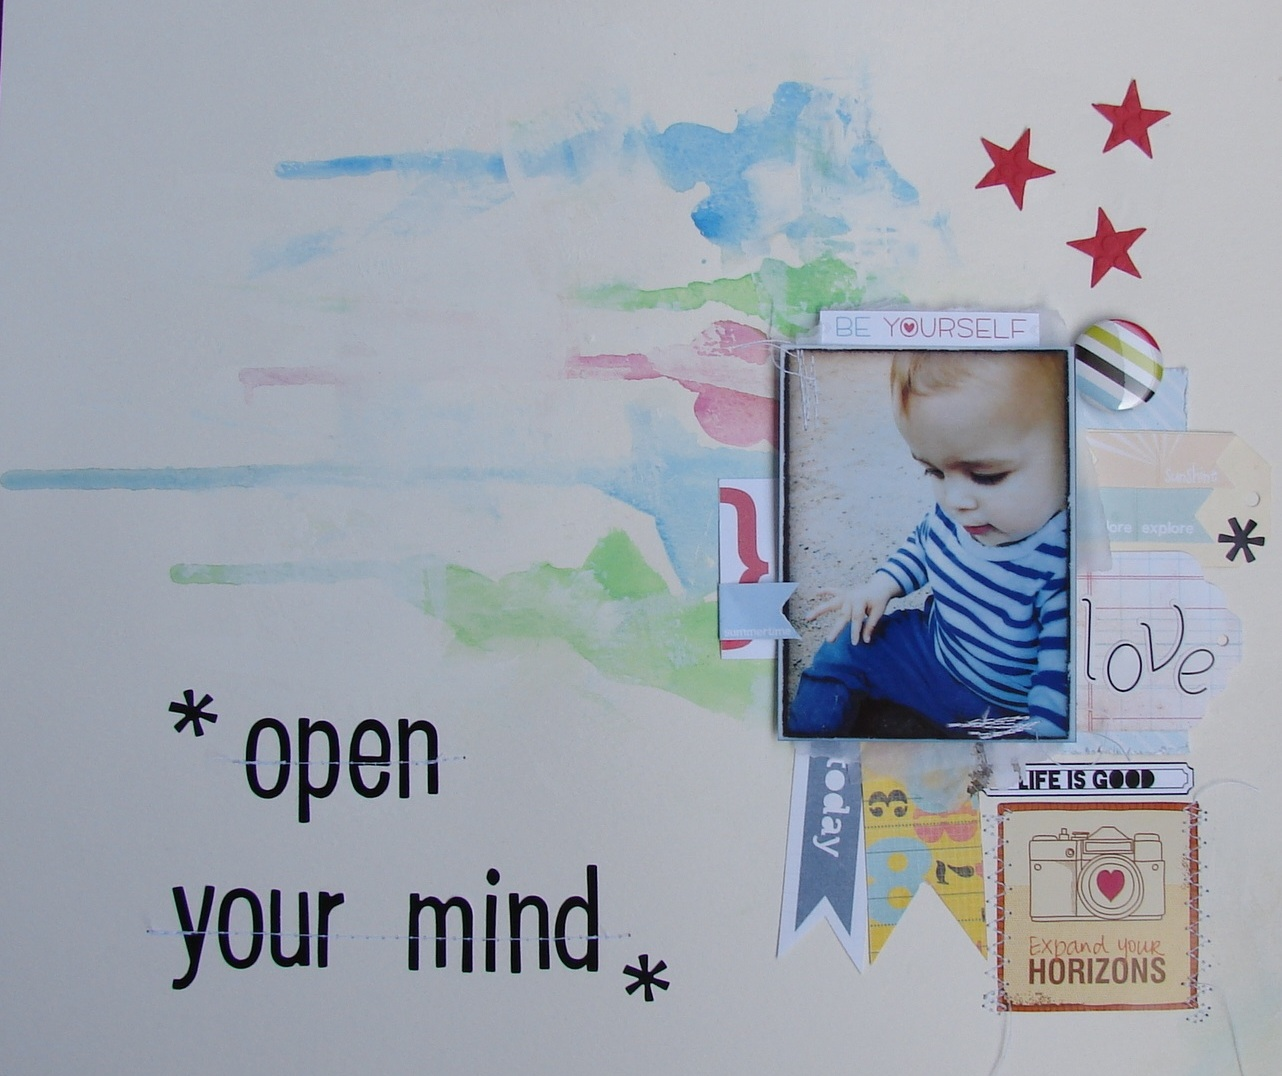 open your mind Find open your mind stock images in hd and millions of other royalty-free stock photos, illustrations, and vectors in the shutterstock collection thousands of new, high-quality pictures added every day.